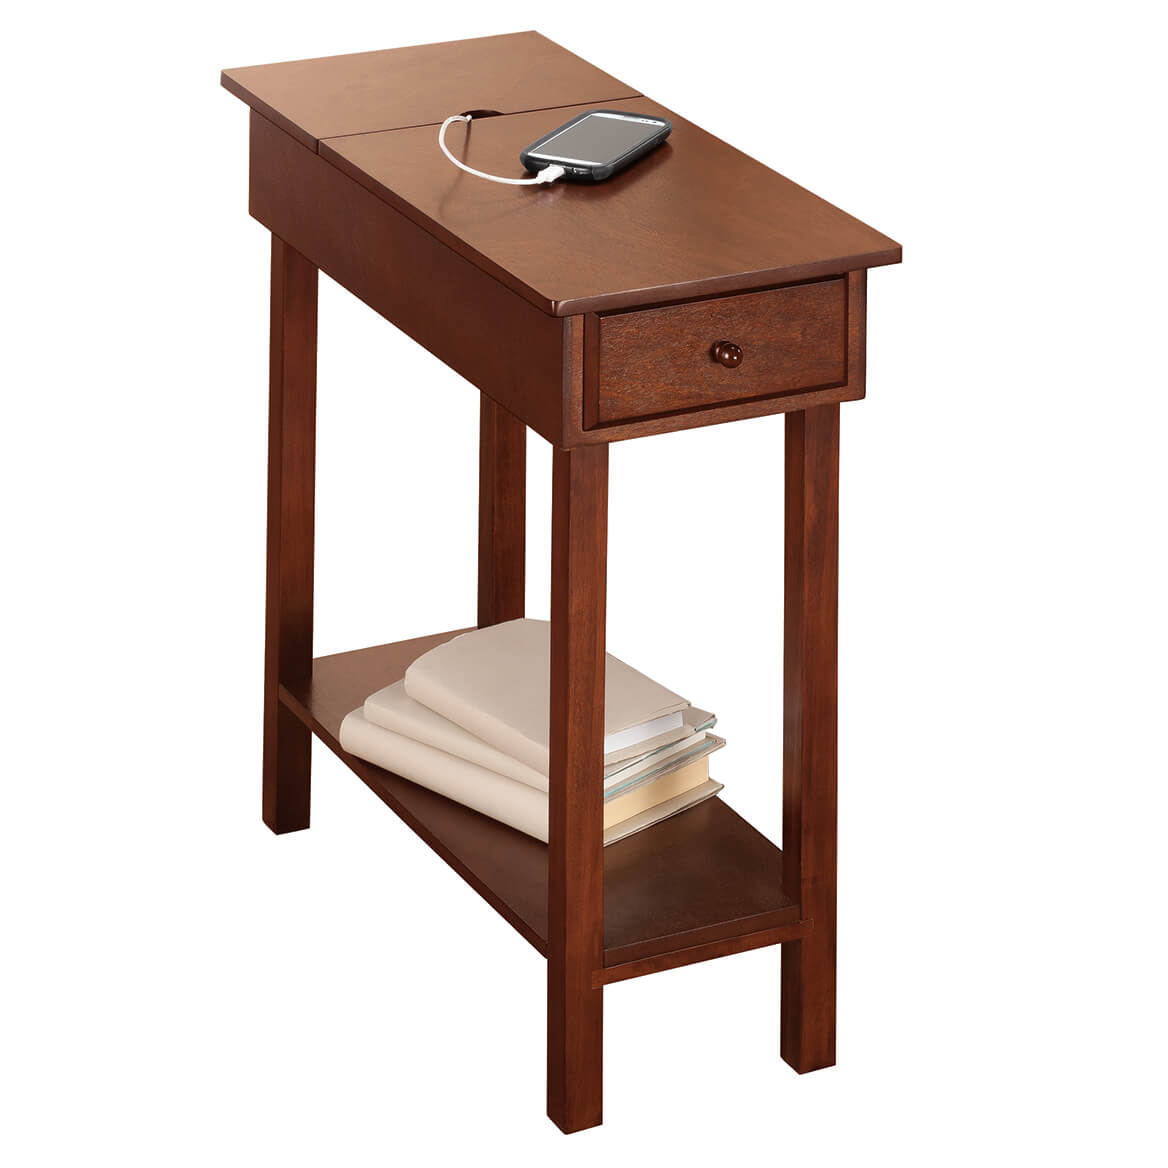 Amazing Chairside Table With Usb Power Strip By Oakridge Download Free Architecture Designs Rallybritishbridgeorg